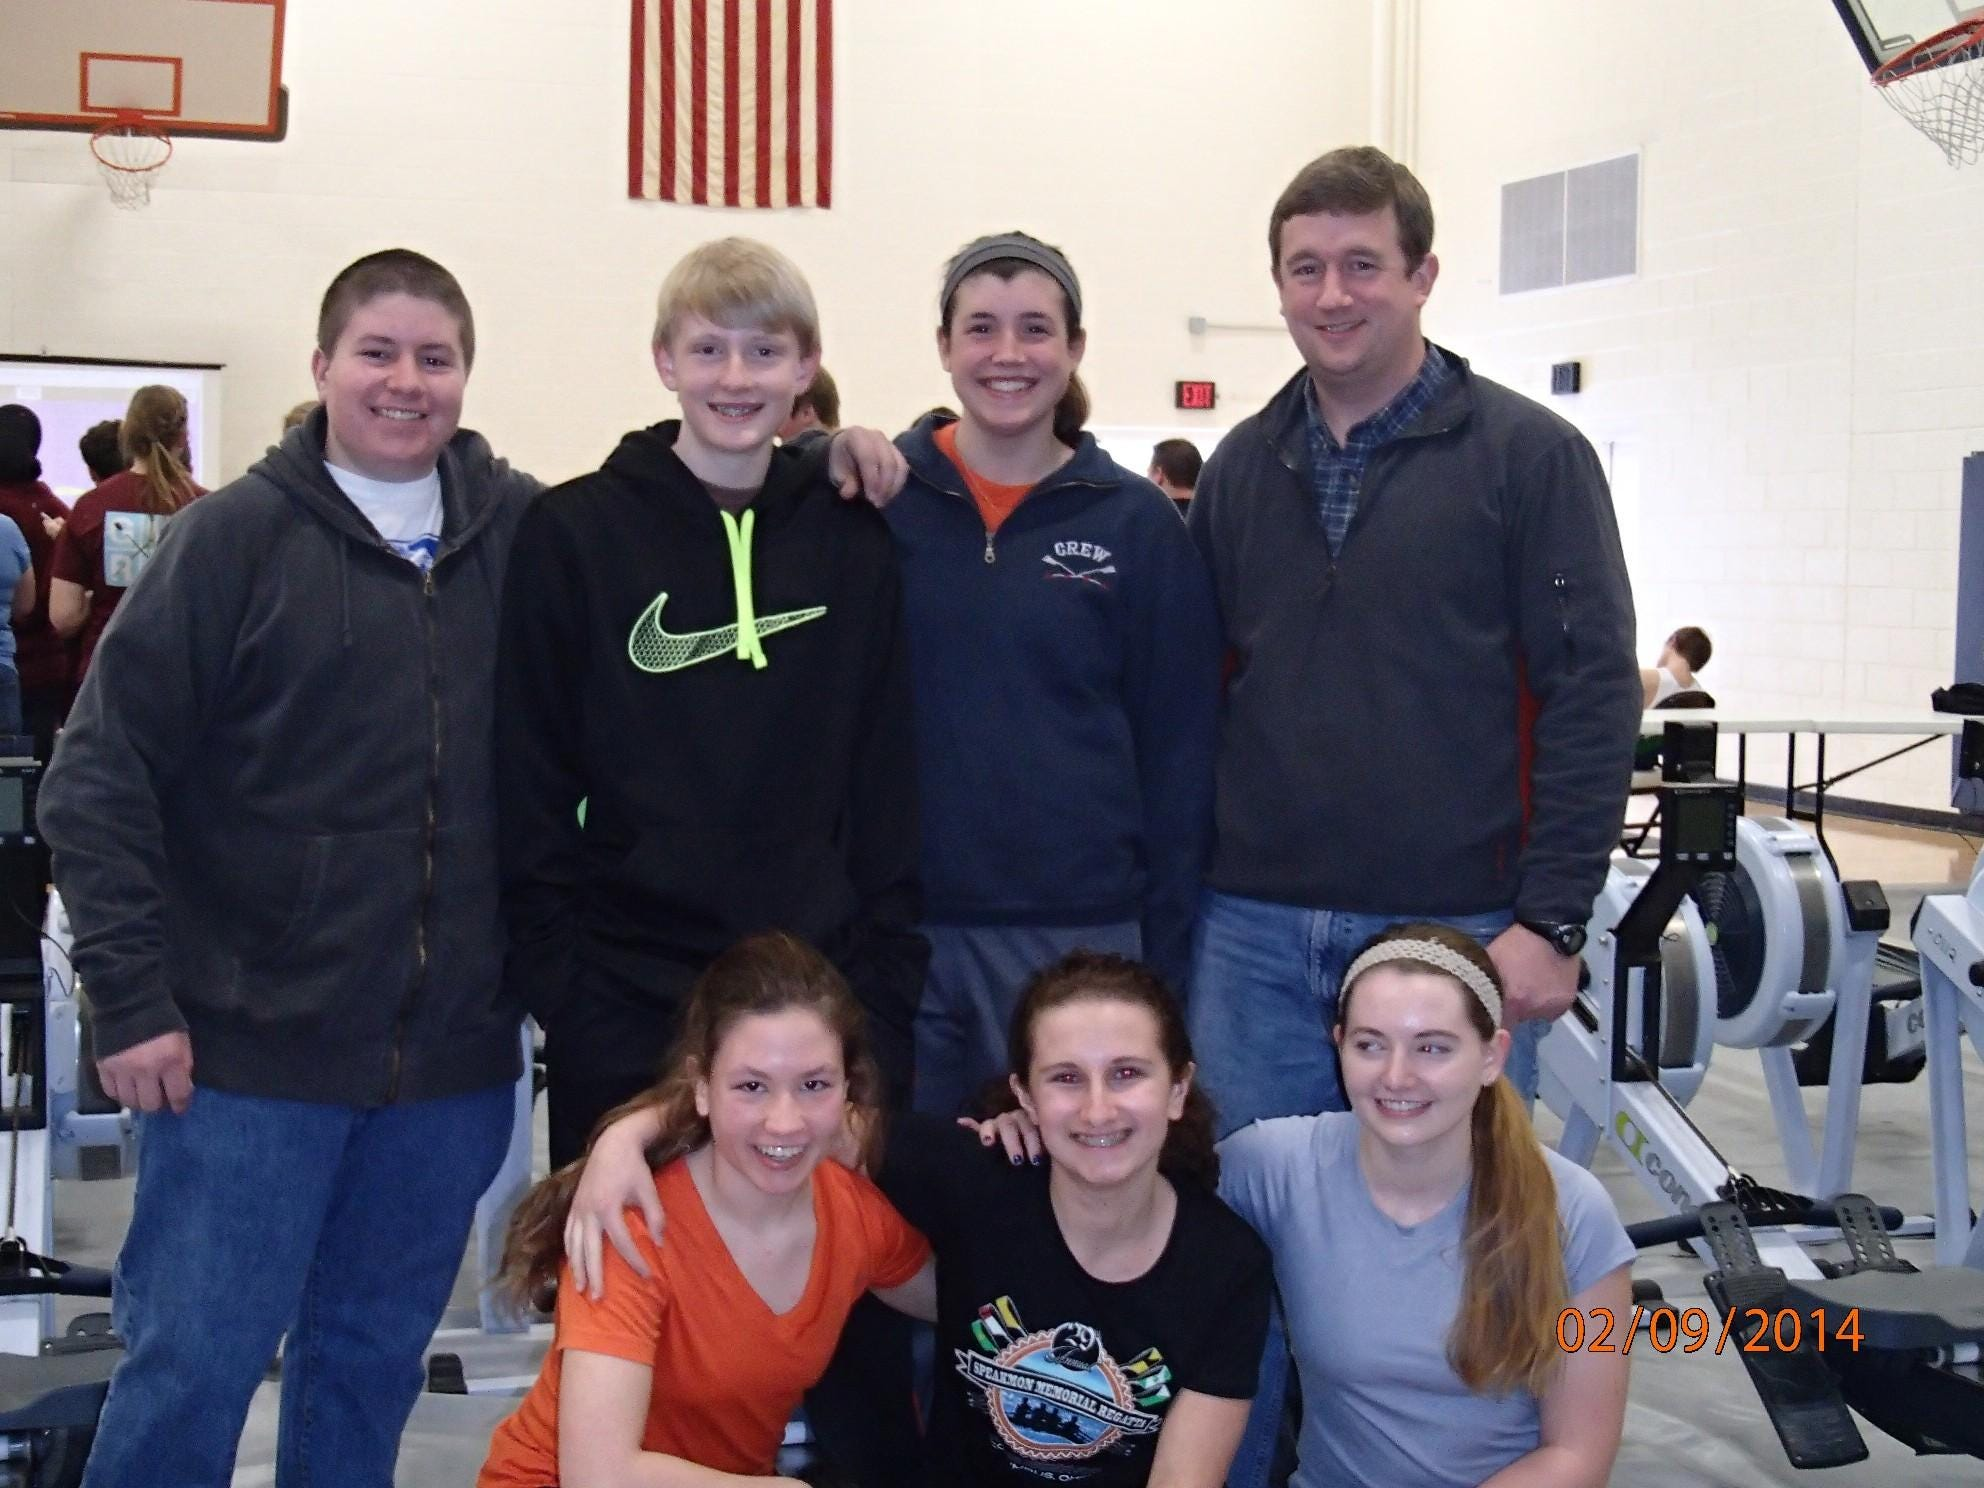 The Clermont Crew rowing team celebrates after competing in the World Indoor Rowing Championship in 2014. In back, from left, are Ben Marquez of Batavia, Ian Moorhead of Bethel, Ashley Collins of Glen Este and coach Paul Schmid. In front are Lindsey Marquez of Amelia, Ana Absalon of Anderson and Camile Gilbert of Walnut Hills.